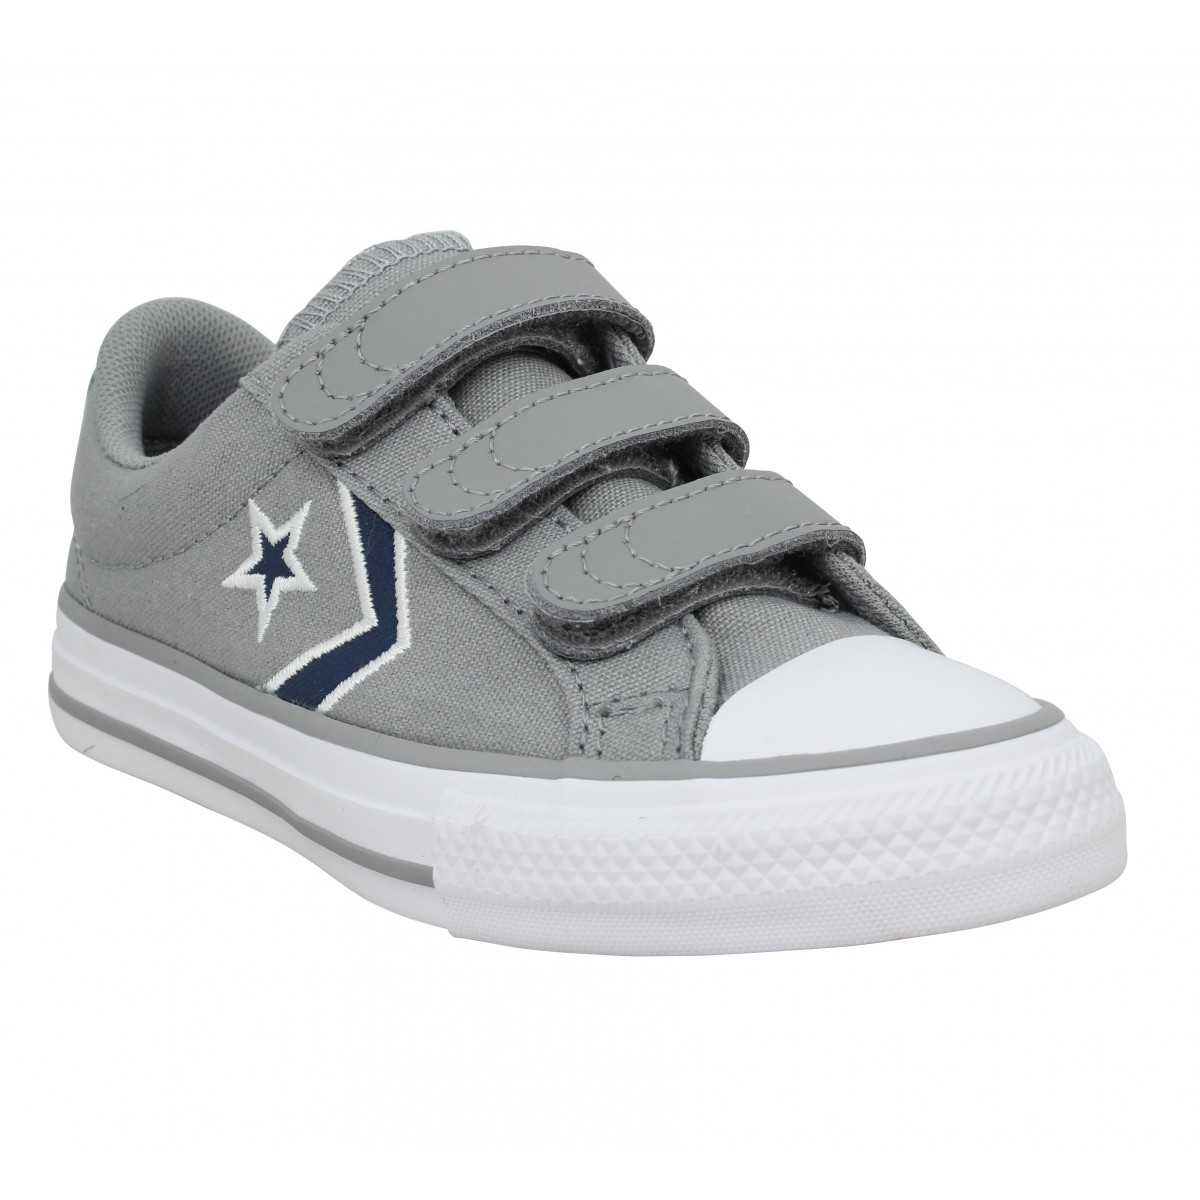 Baskets CONVERSE Star Player 3V OX toile Enfant Dolphin